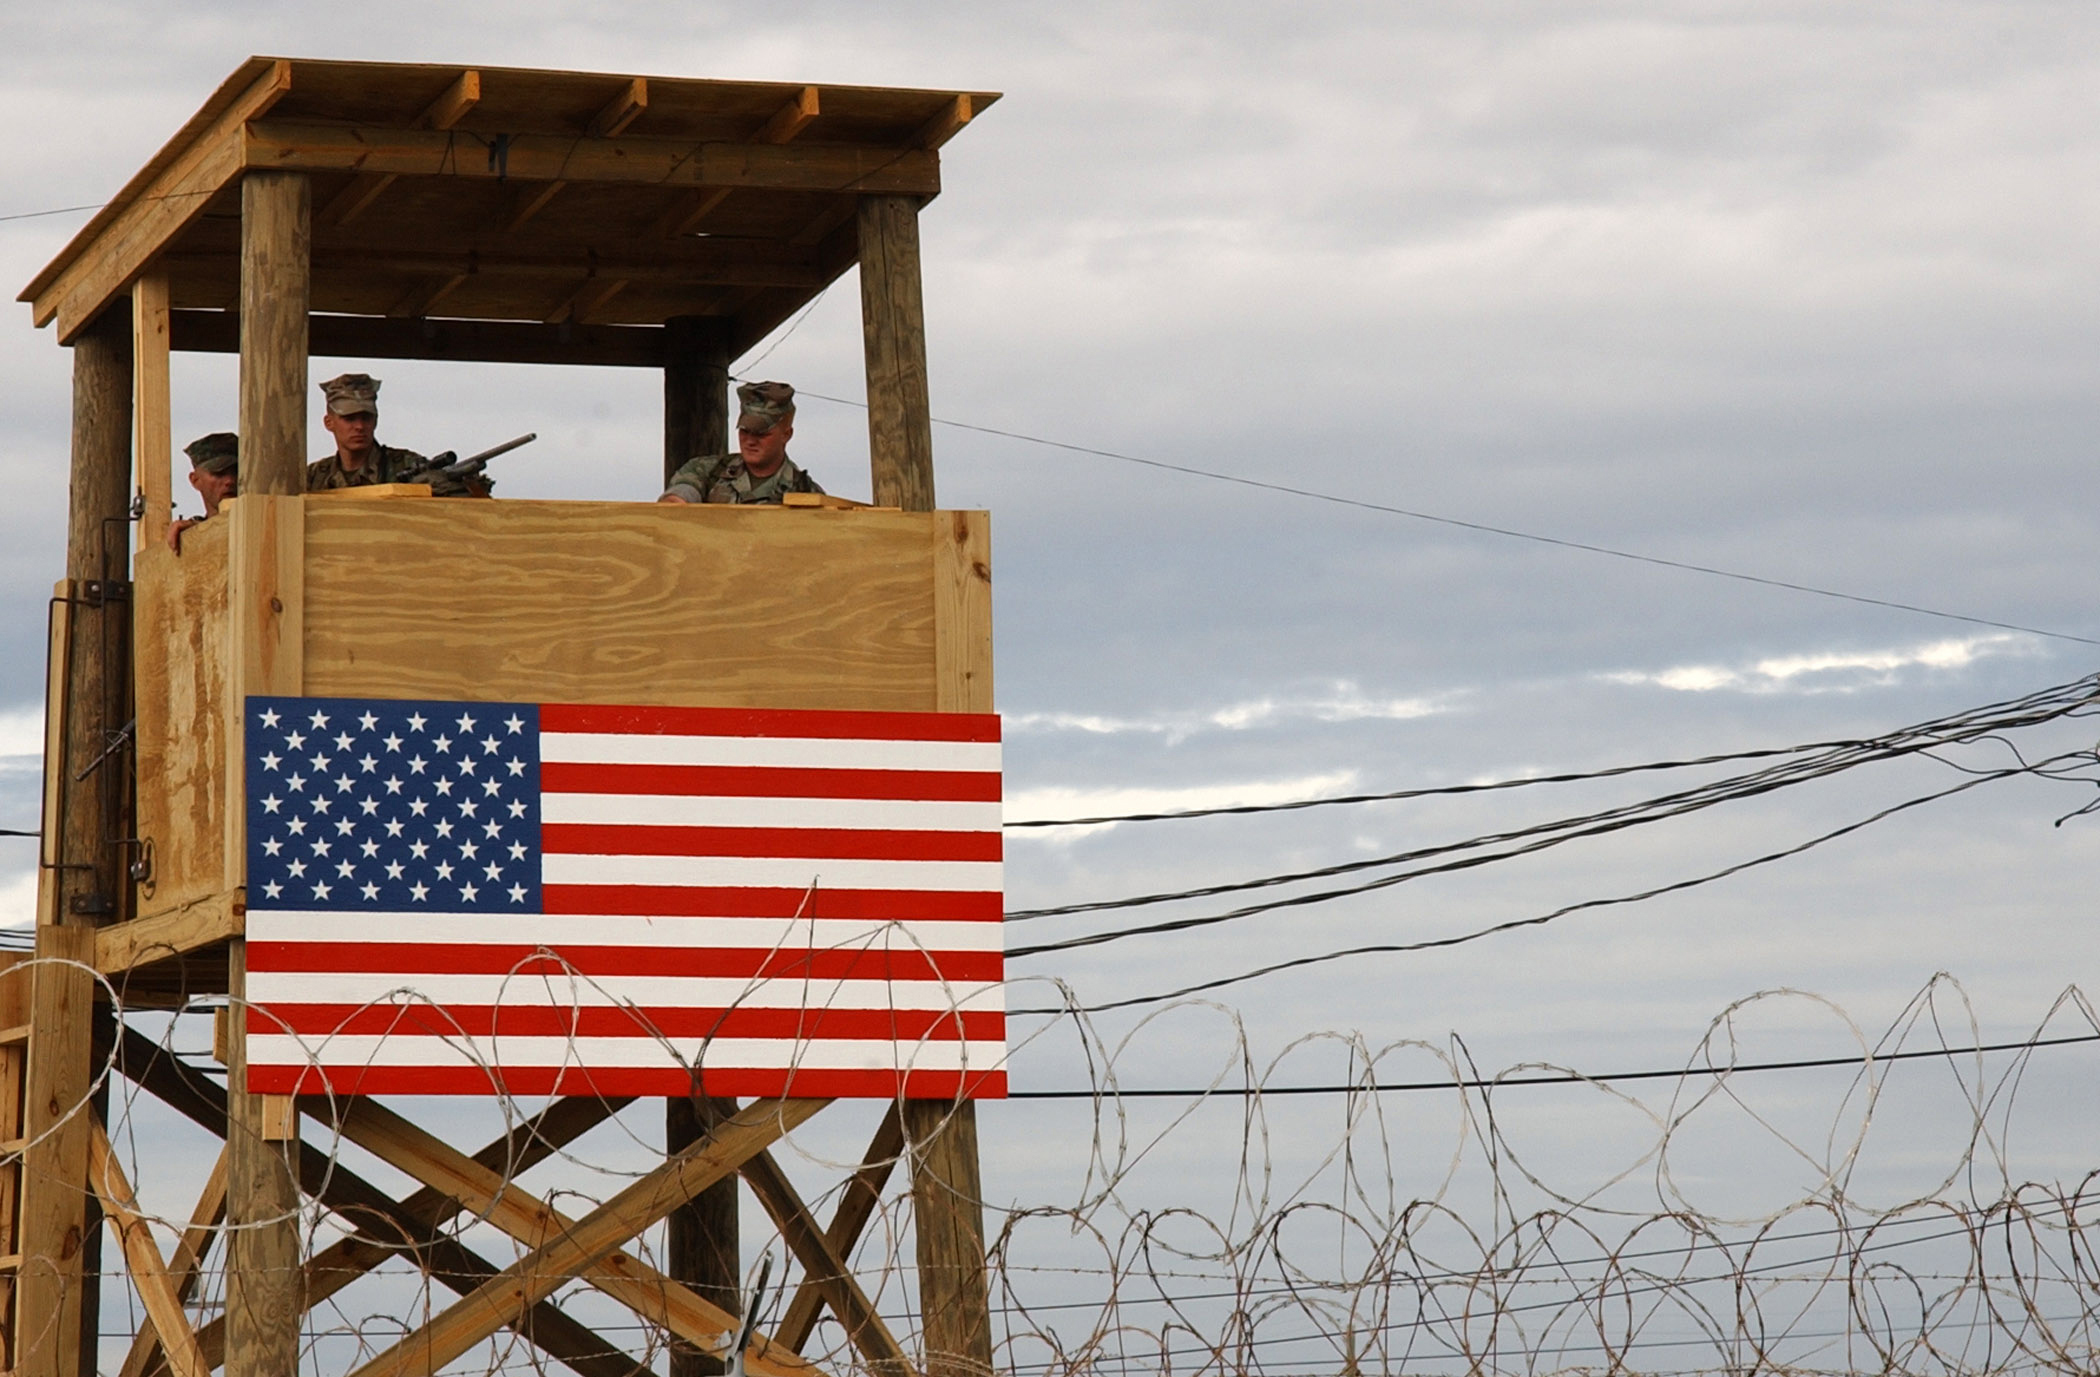 This Week in Guantánamo: 2013 and 2002 Thumbnail Image